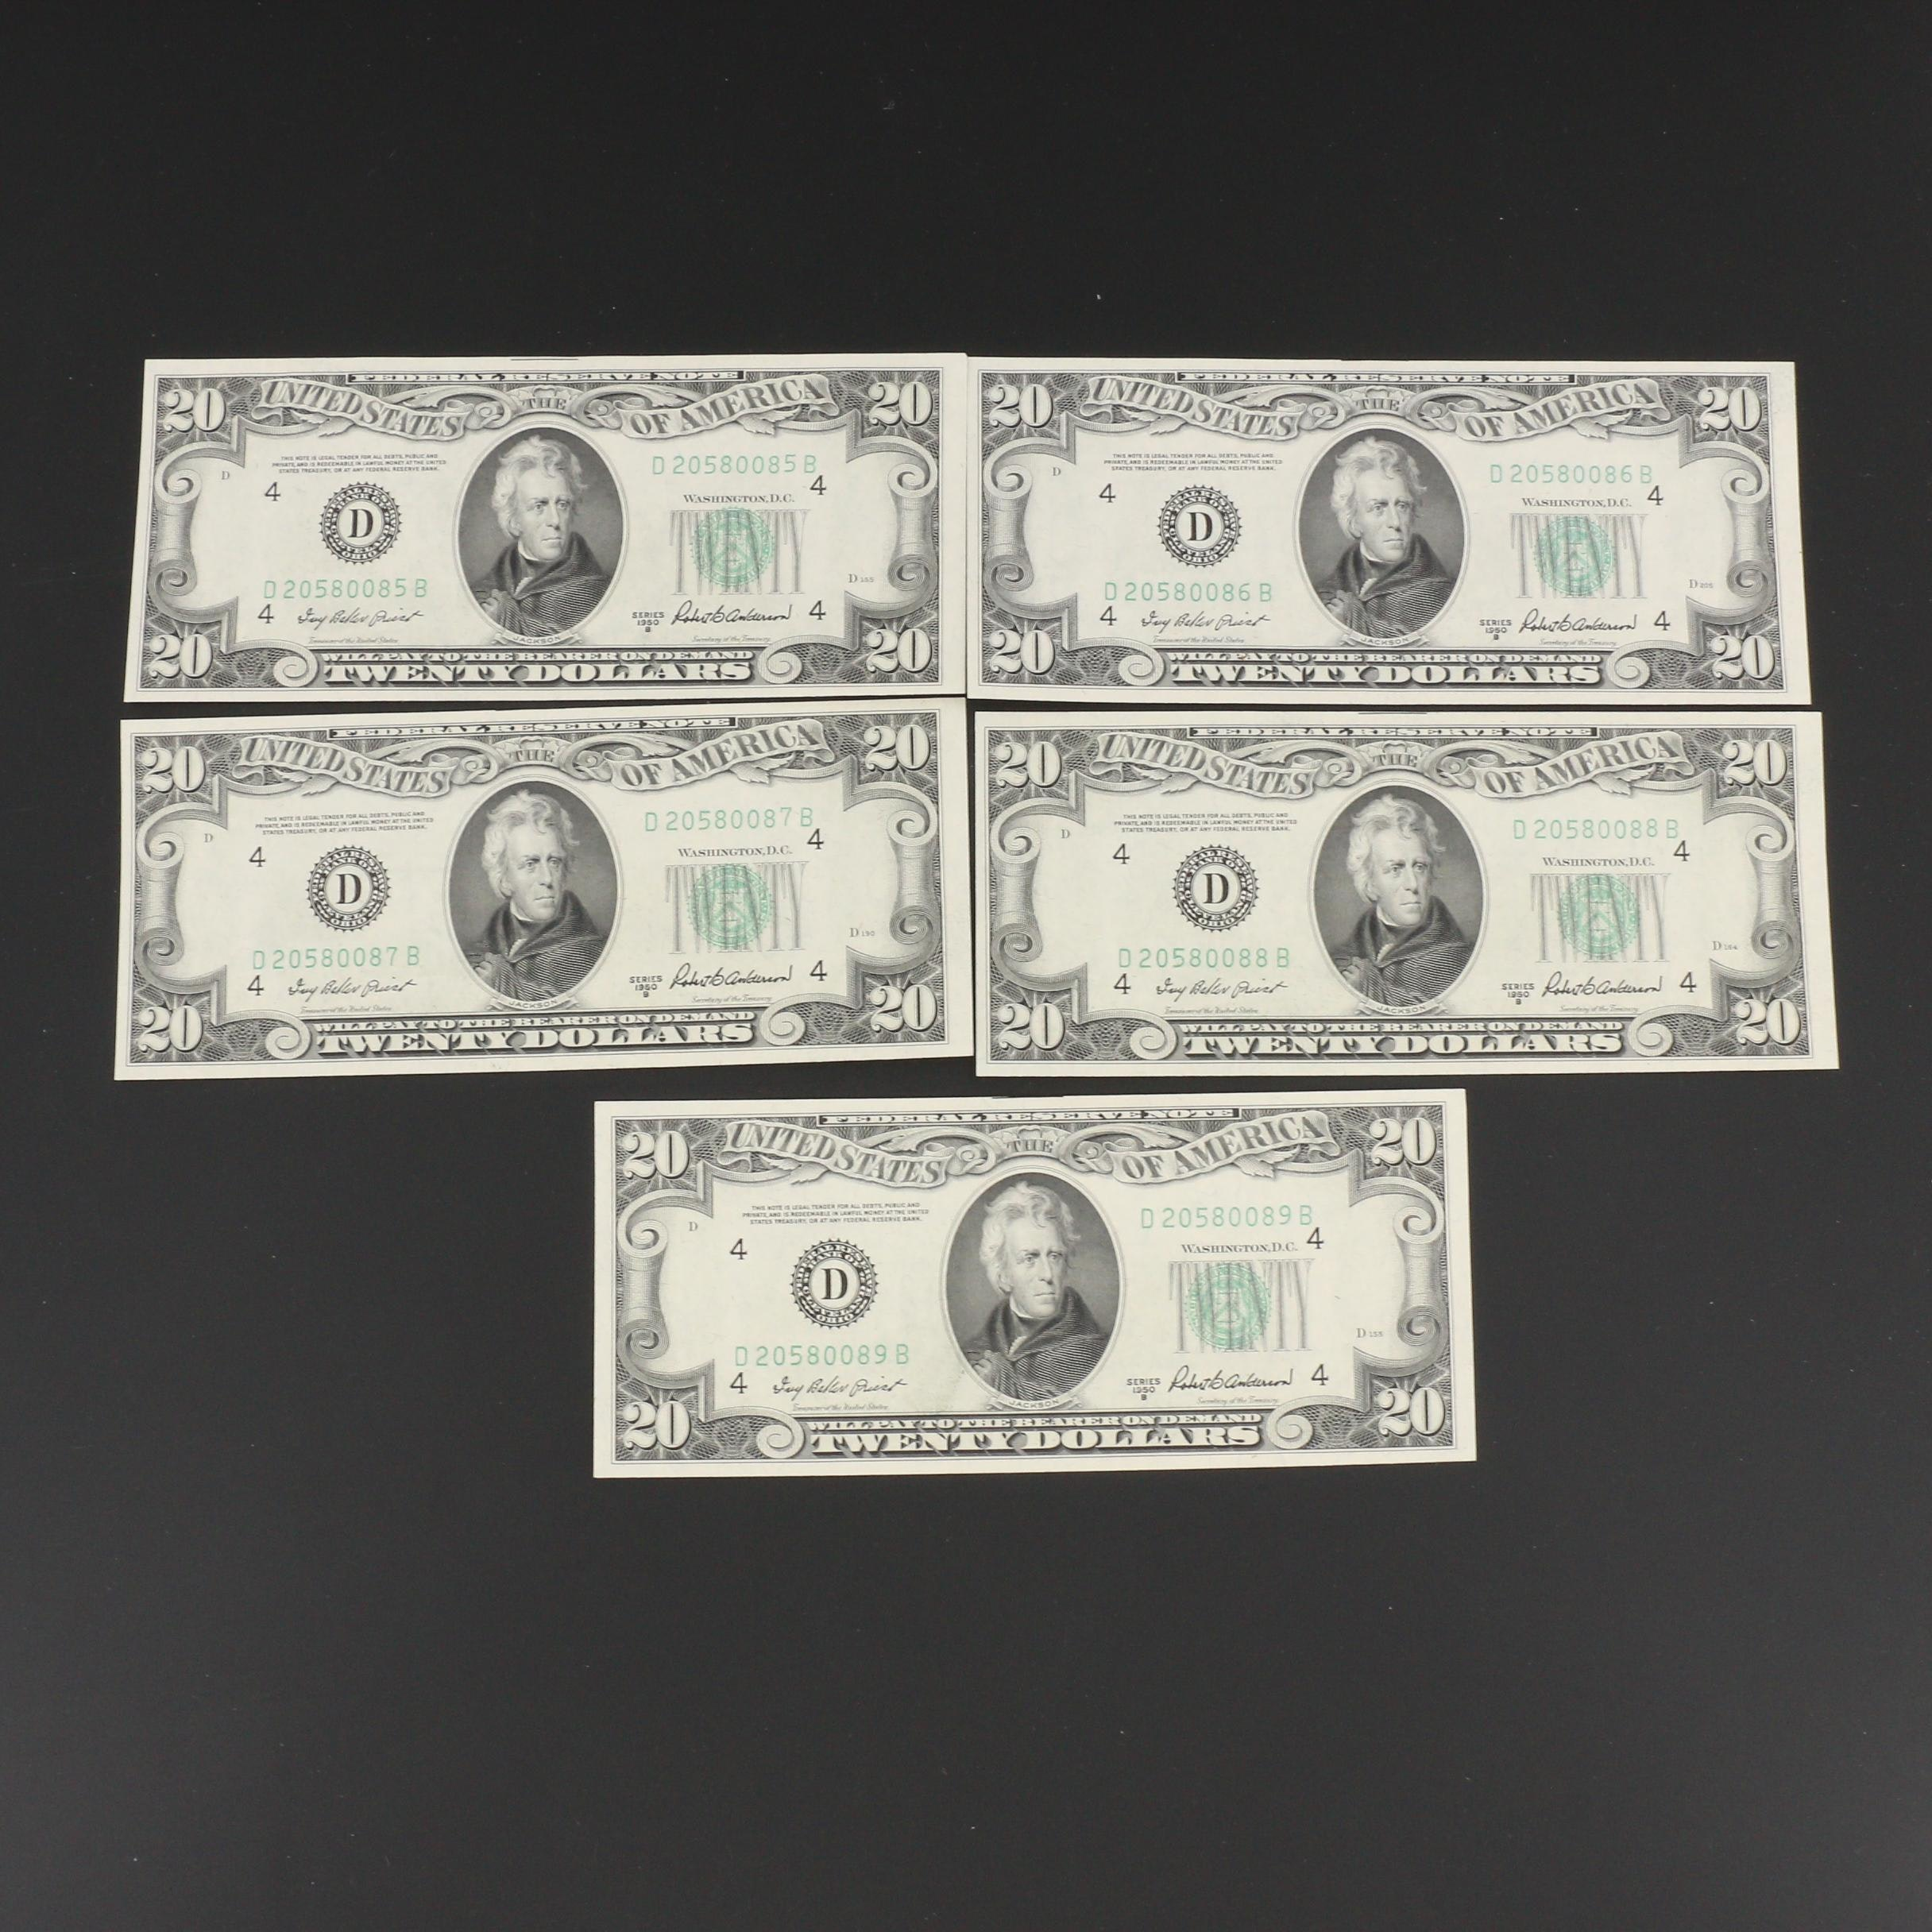 Five Consecutively Numbered Series of 1950B $20 Federal Reserve Notes